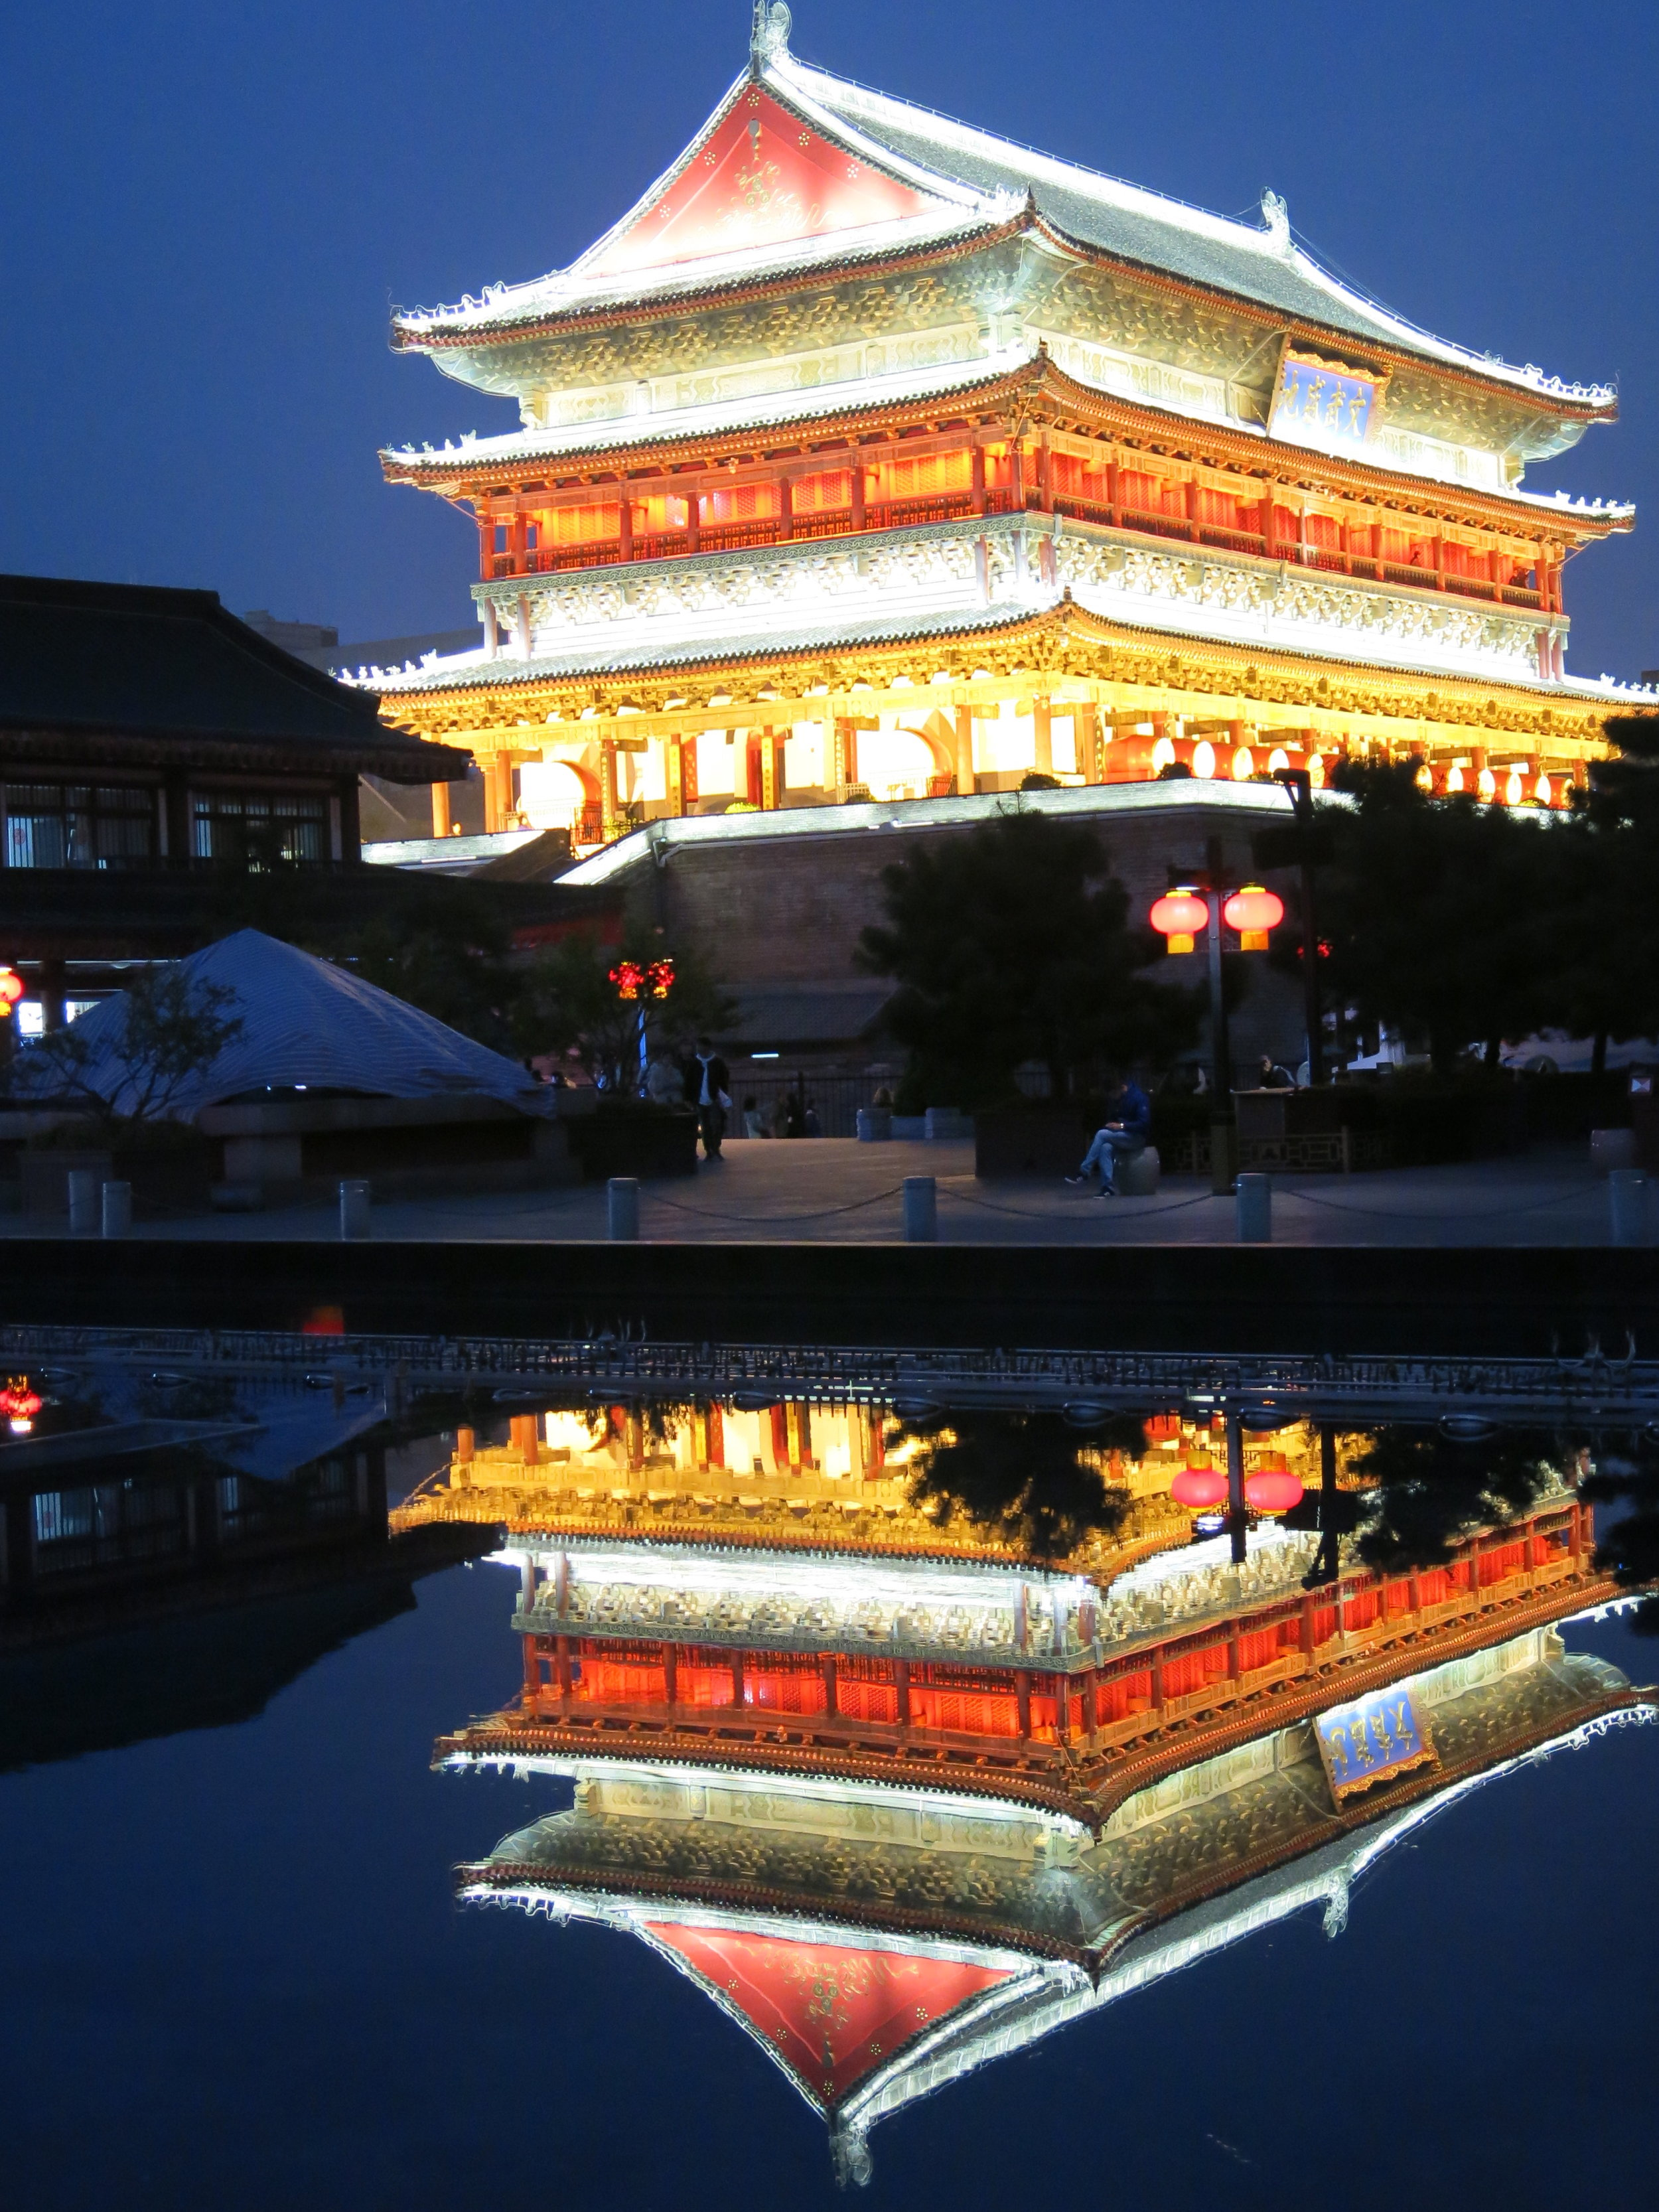 At night, the Drum Tower becomes magical !